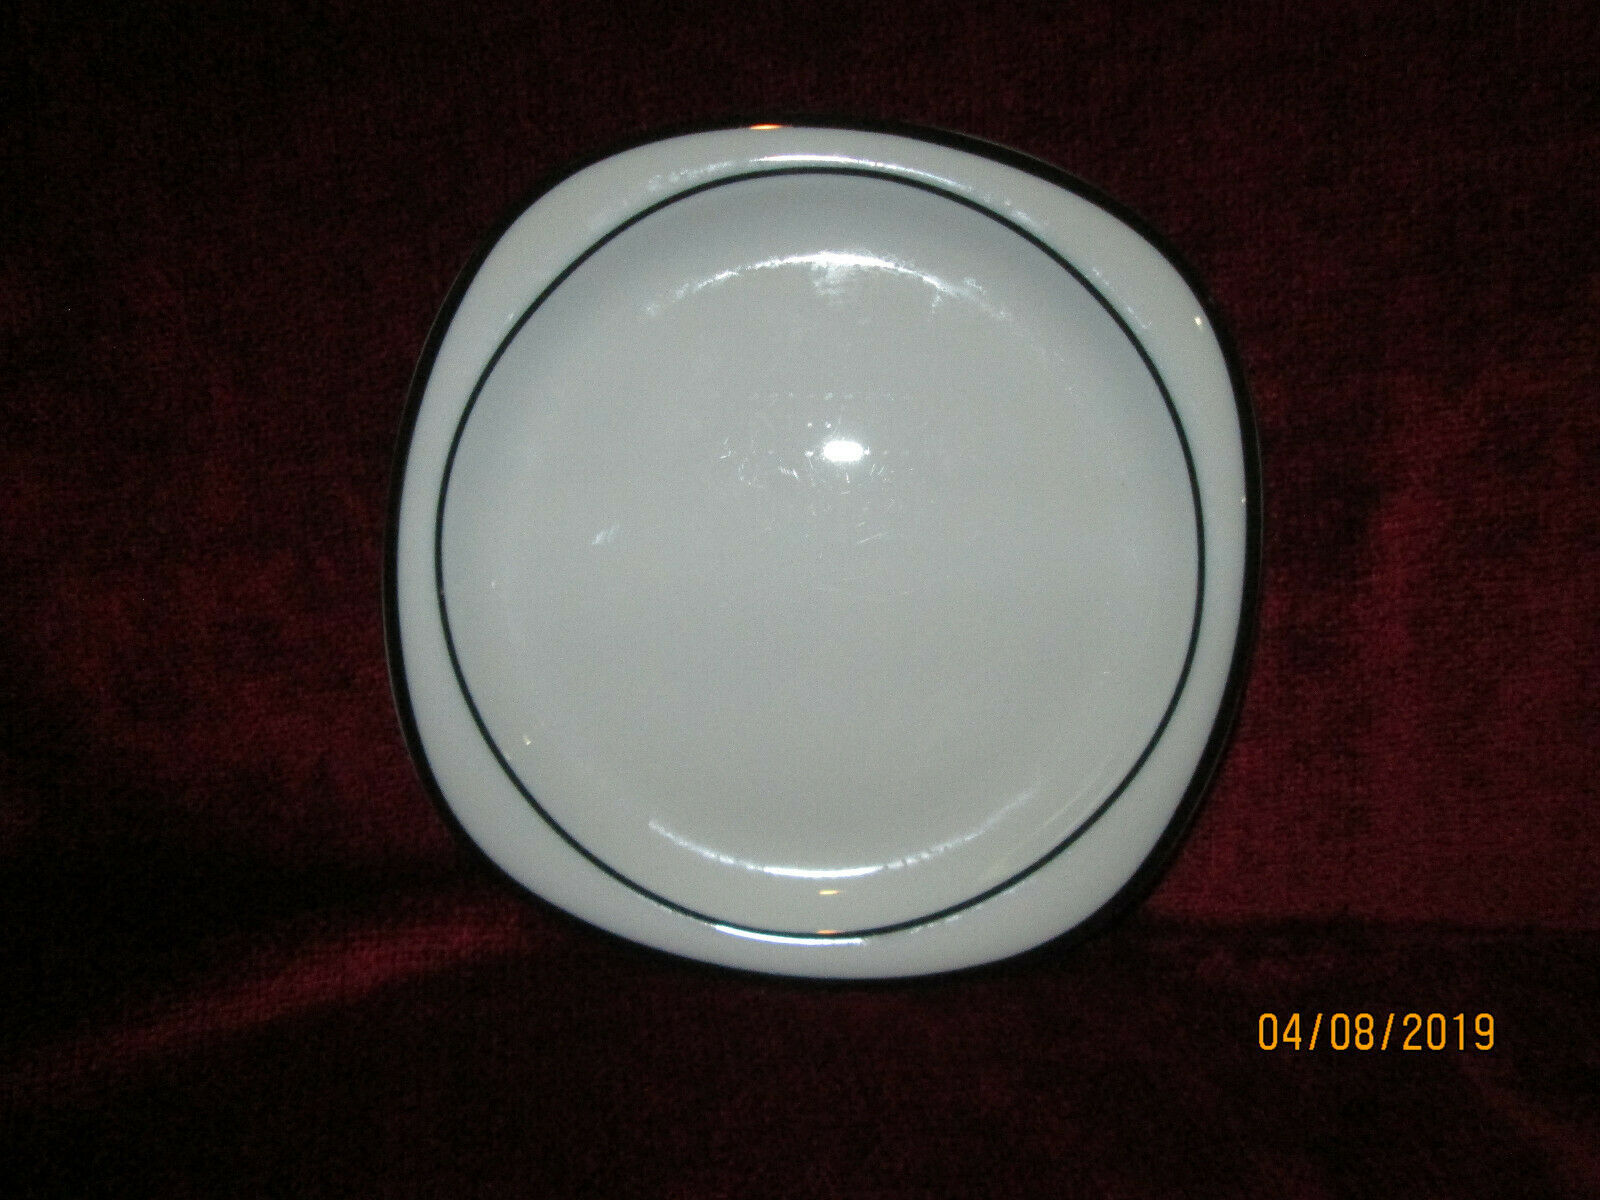 Primary image for ROSENTHAL CONCEPT 5 ANTHRACITE black salad plate 7 5/8""